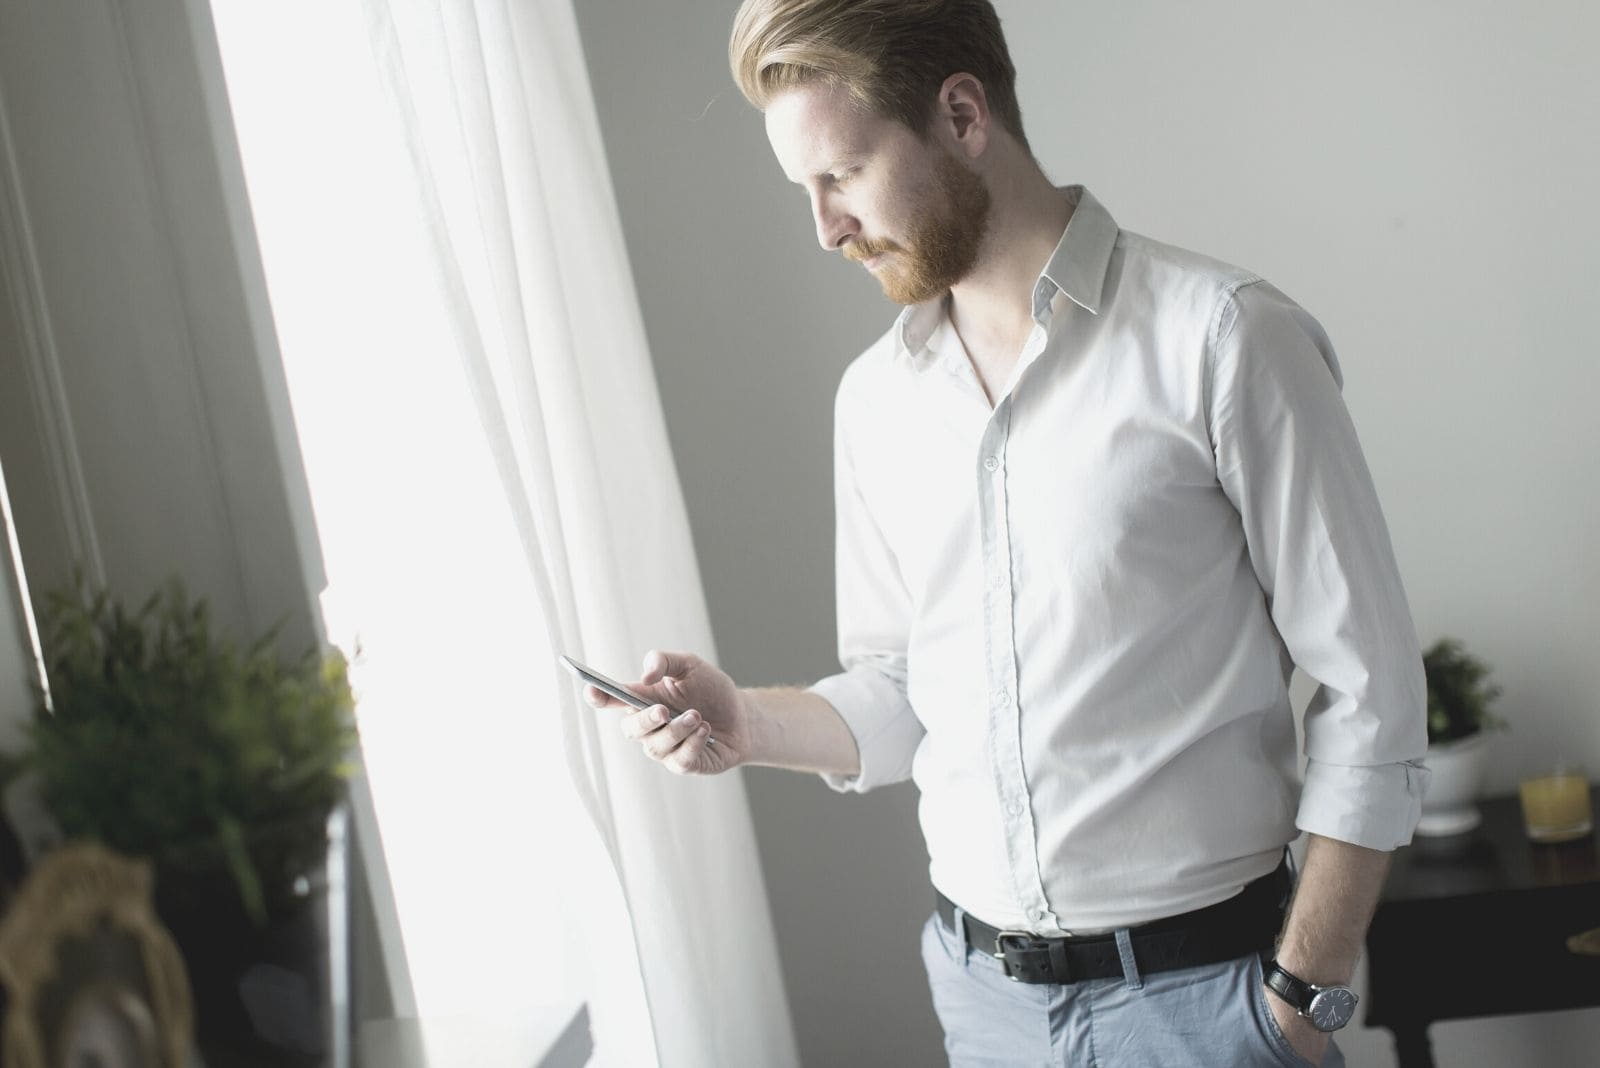 man looking at his phone with one hand on his pocket while standing inside a room